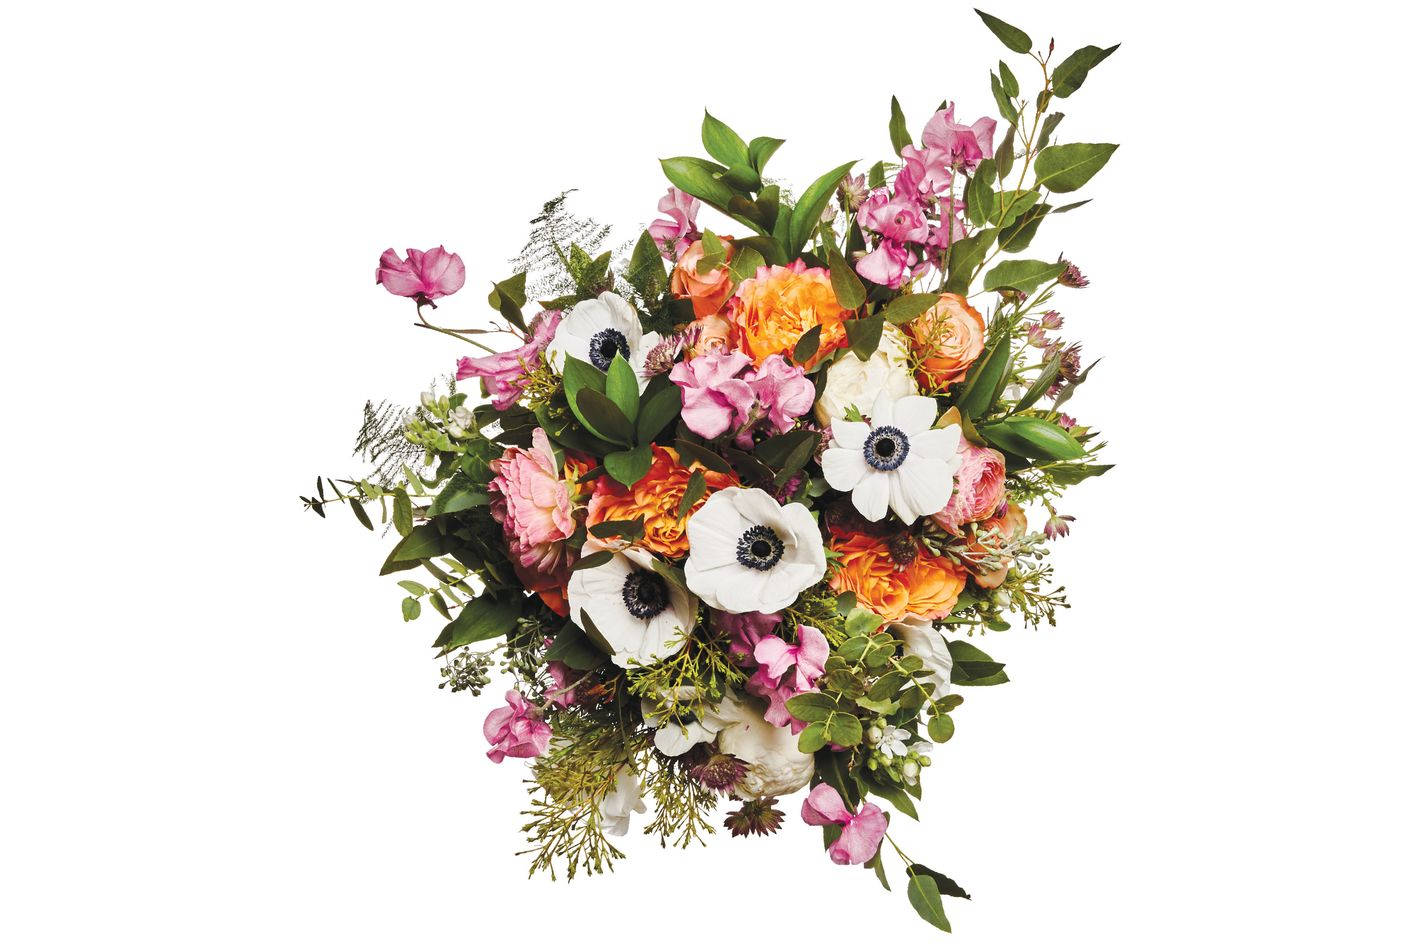 Anemone, sweet pea, peony, tweedia, rose, ranunculus, astrantia, cham­elaucium foliage, rainbow and seeded eucalyptus, and asparagus fern